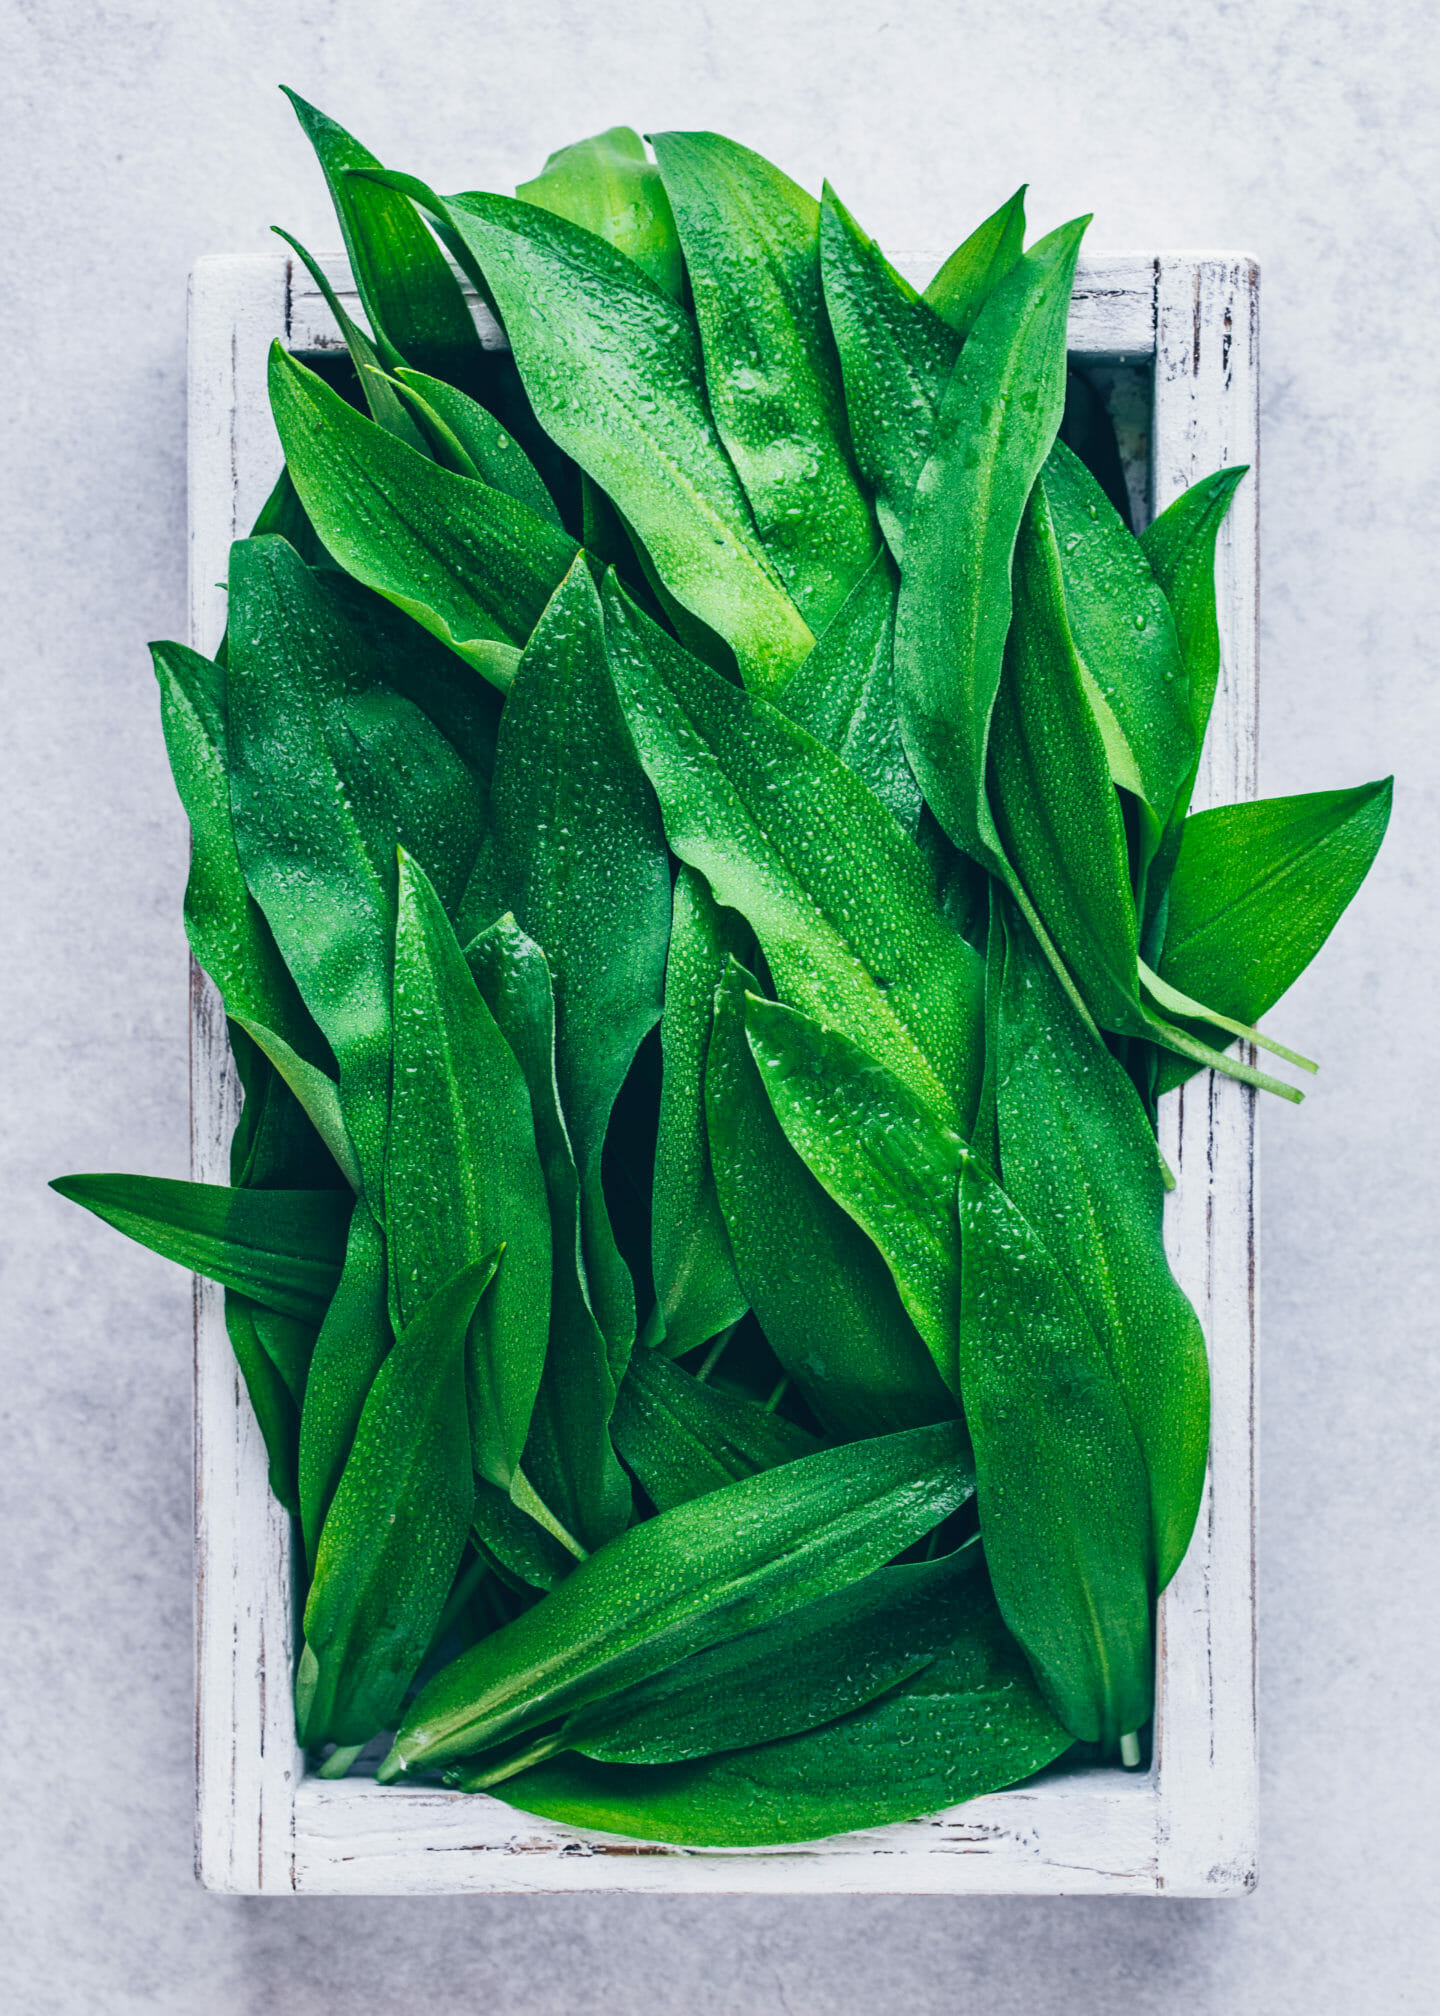 wild garlic (food photography)